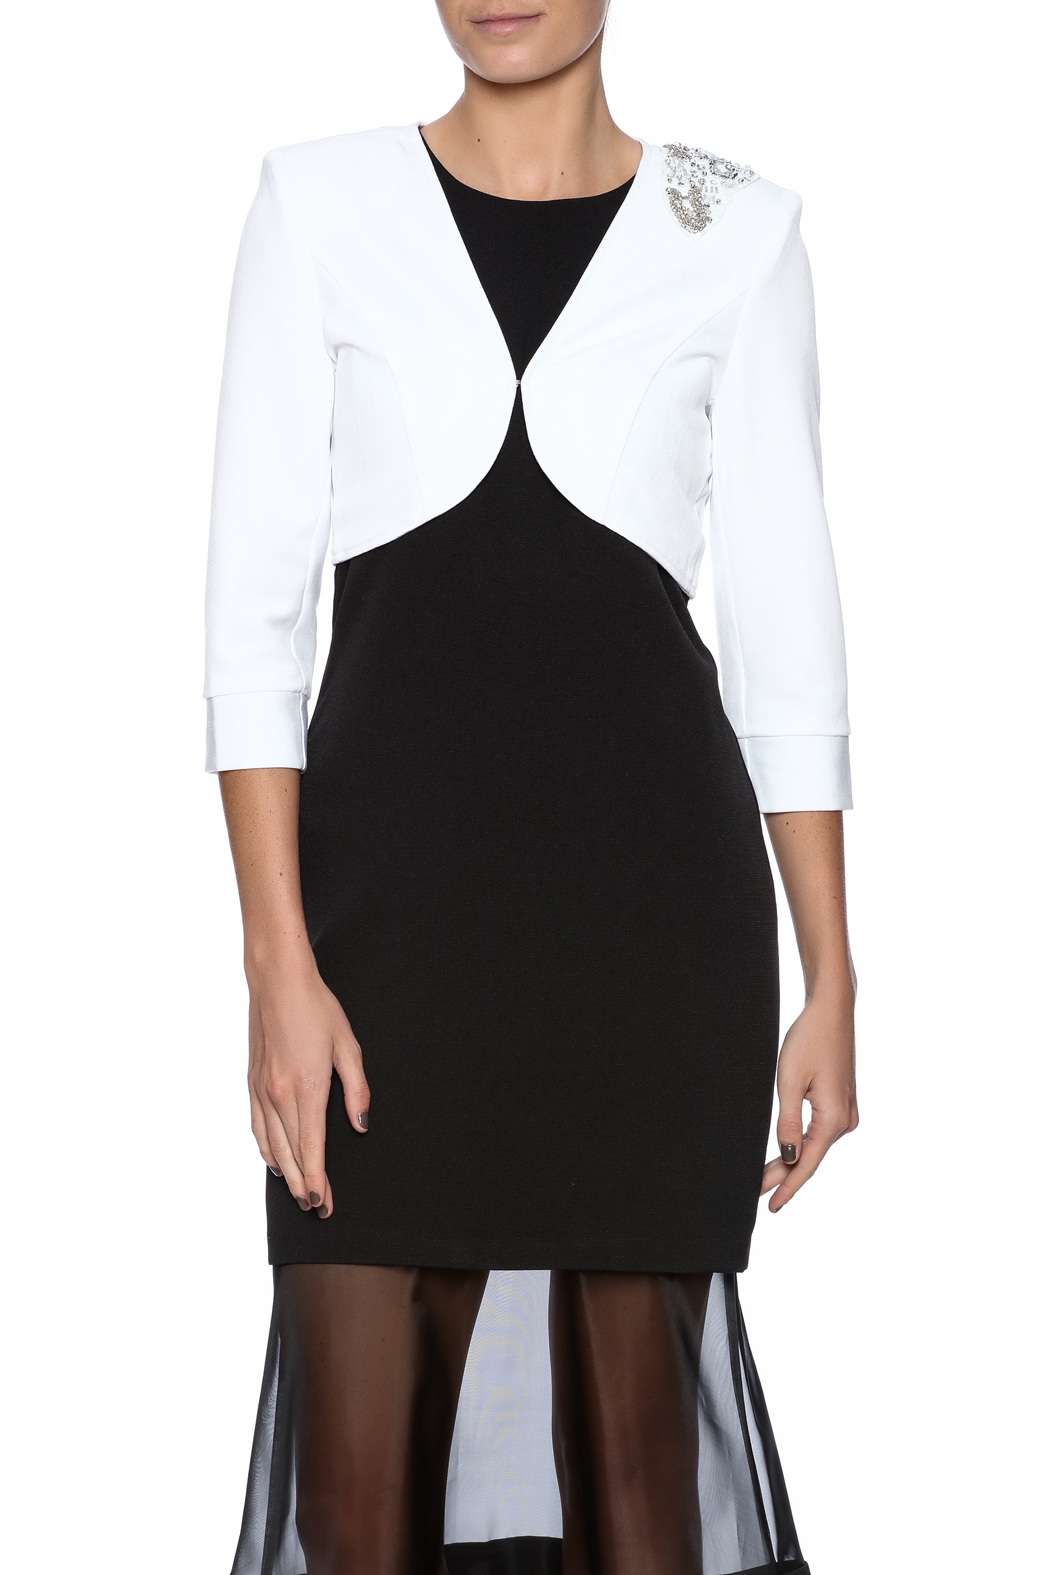 Sans Souci White Jeweled Blazer - Main Image